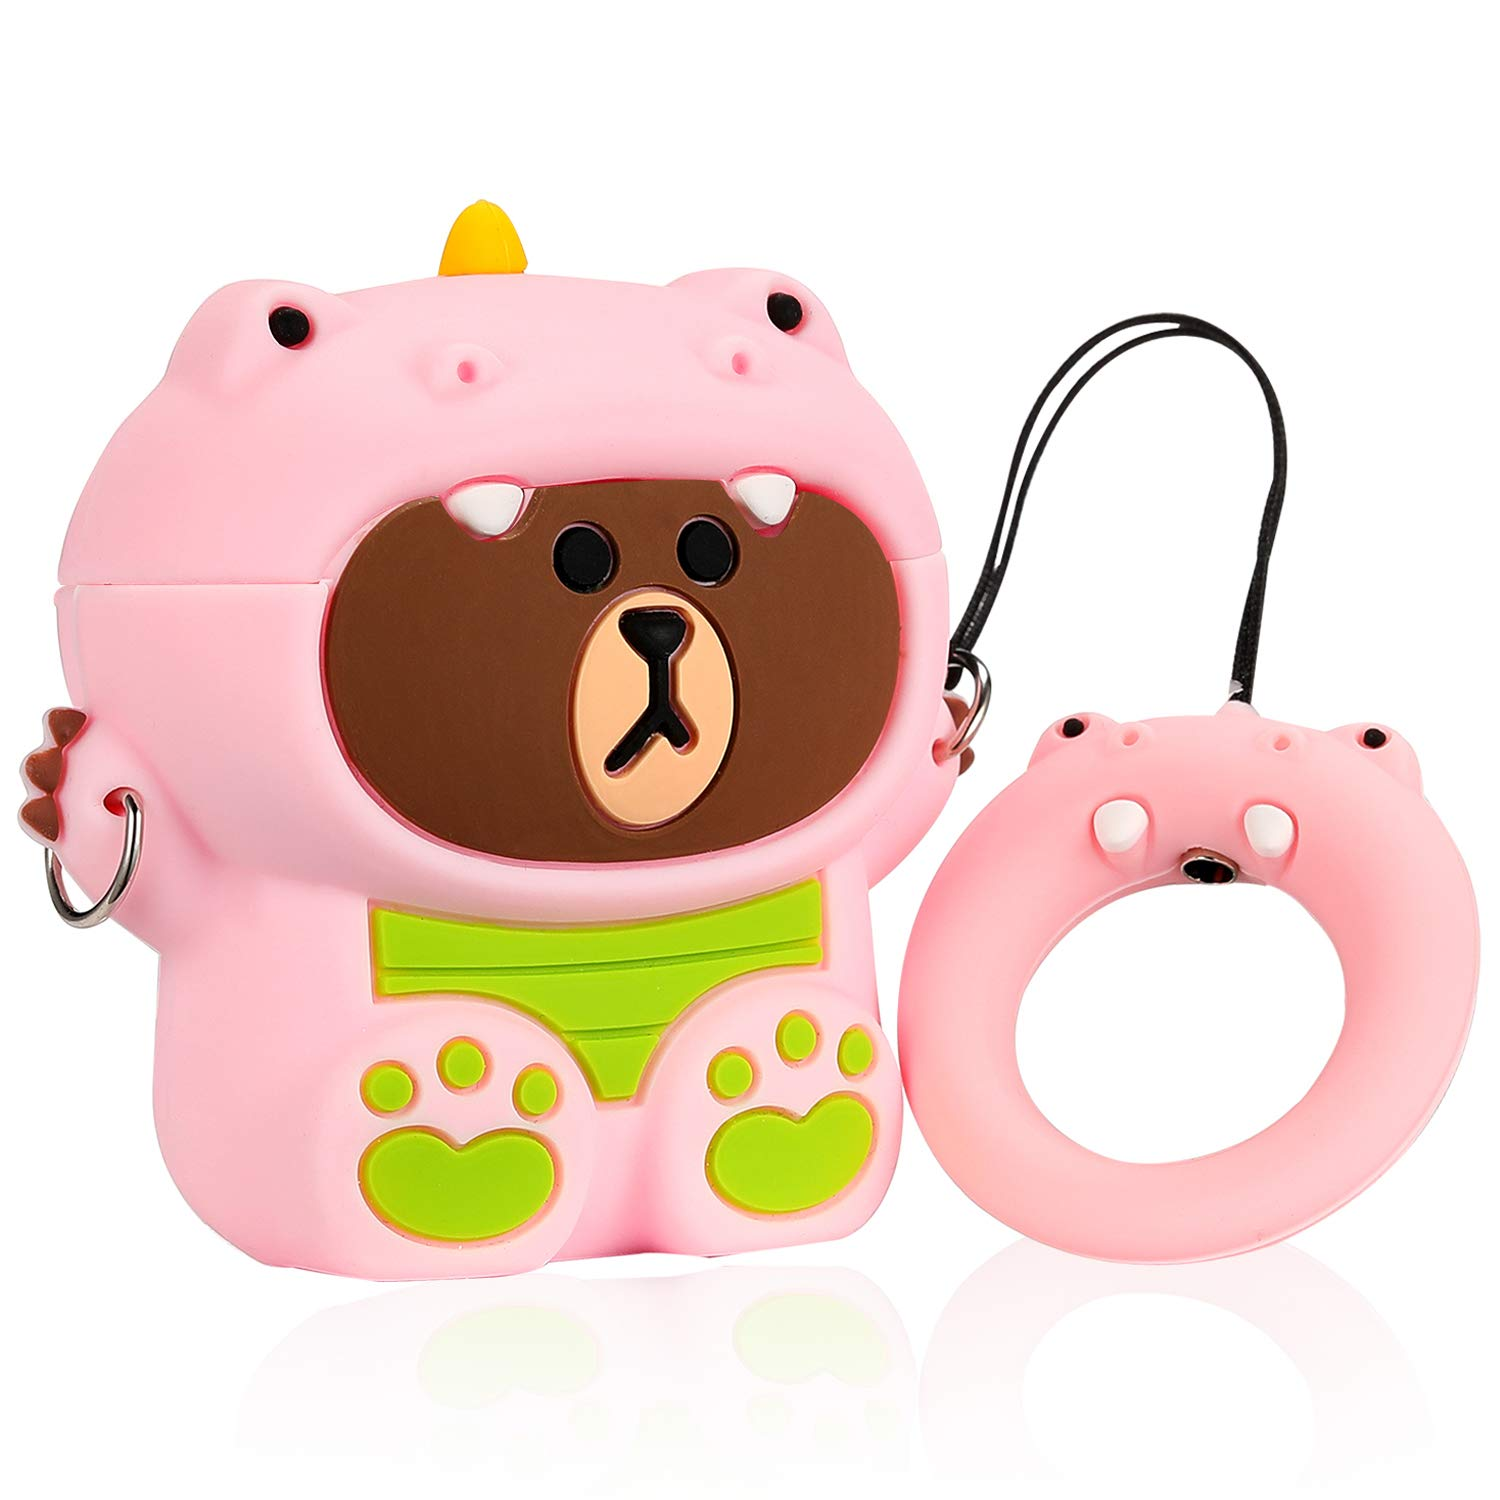 Joyleop Rabbit Pink Case Compatible with Airpods 1/2, Cute Cartoon Fun Funny 3D Animal Kids Girls Teens Cover, Kawaii Cool Stylish Fashion Soft Silicone Character Airpod Skin Cases for Air pods 1&2